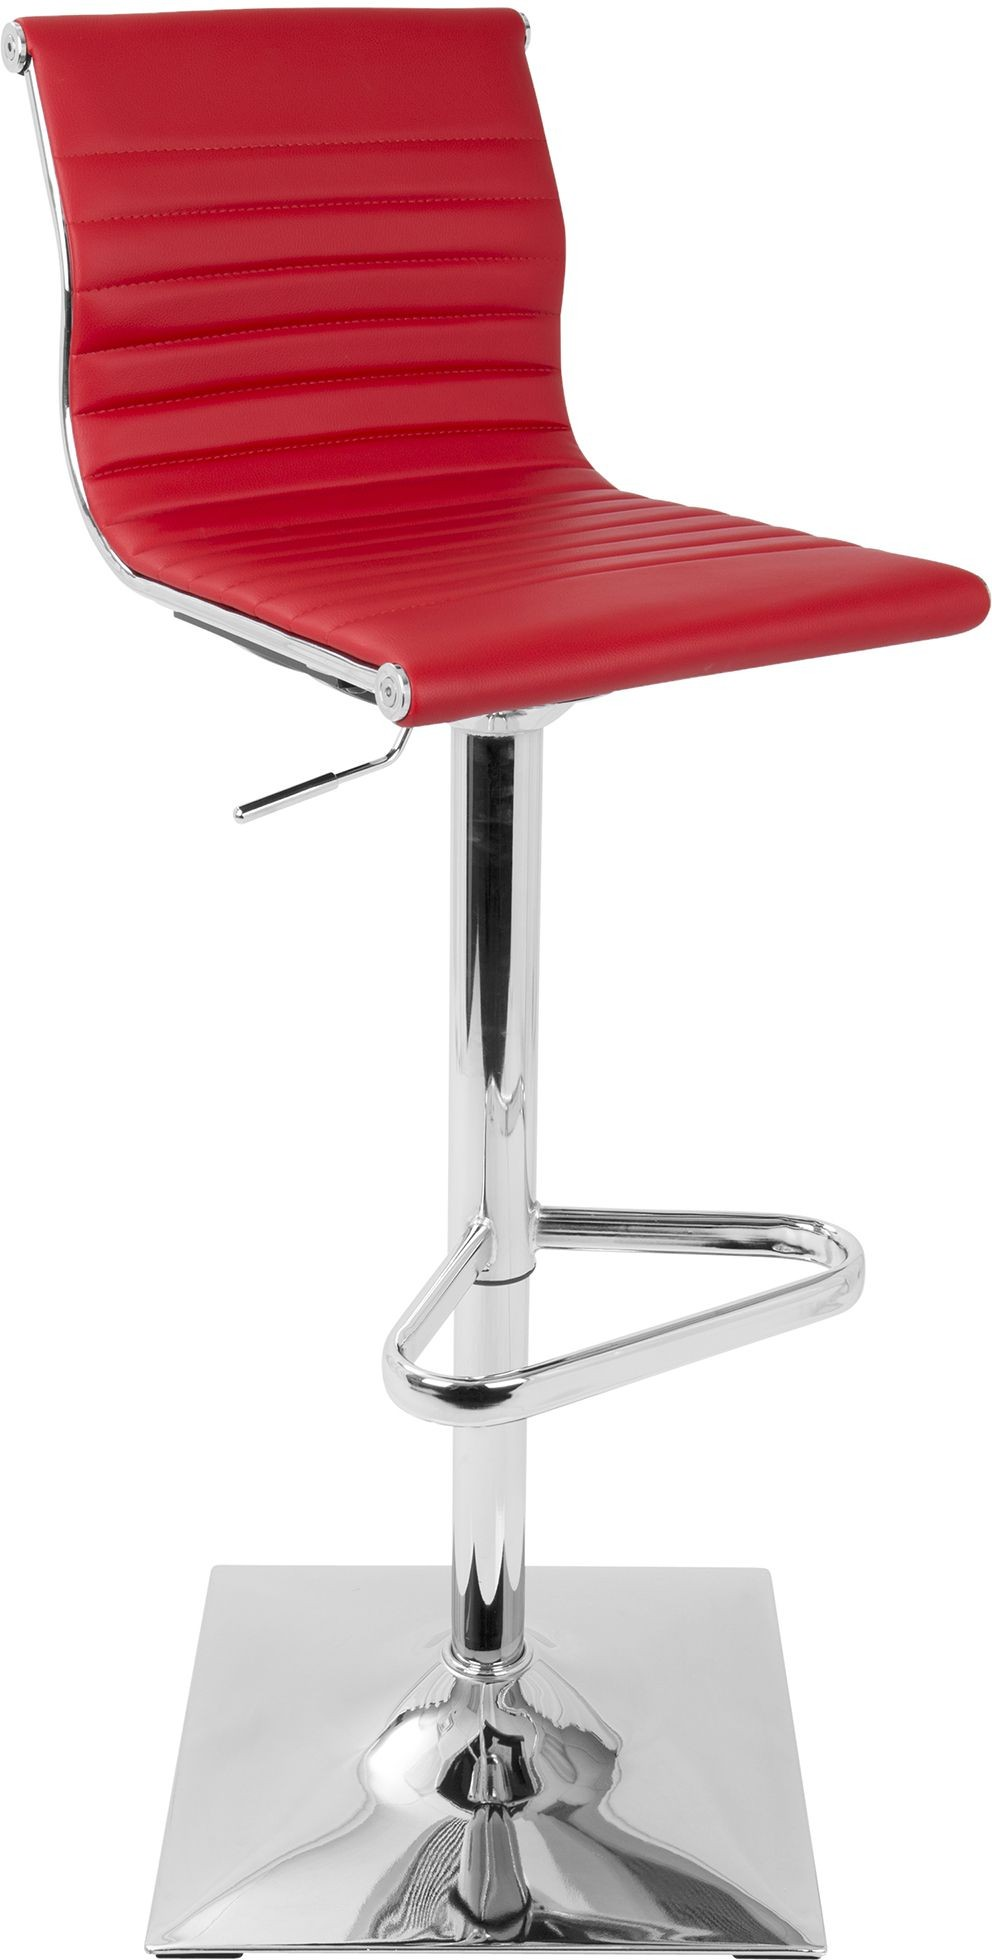 Master Red Adjustable Barstool From Lumisource Available